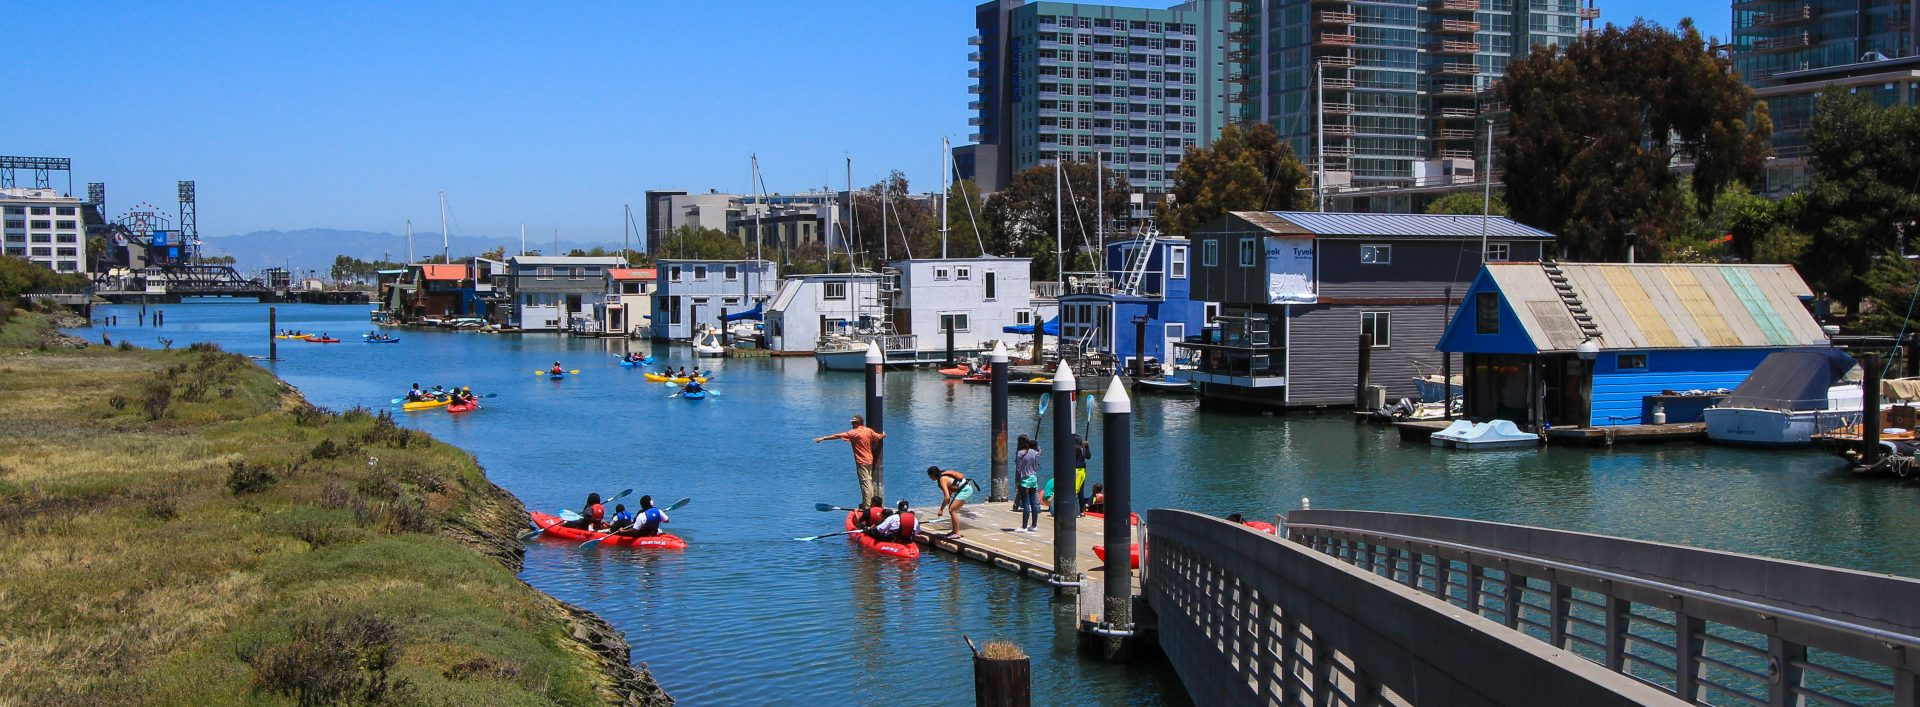 green grasses on left, many kayaks in narrow channel, and houseboats along right side